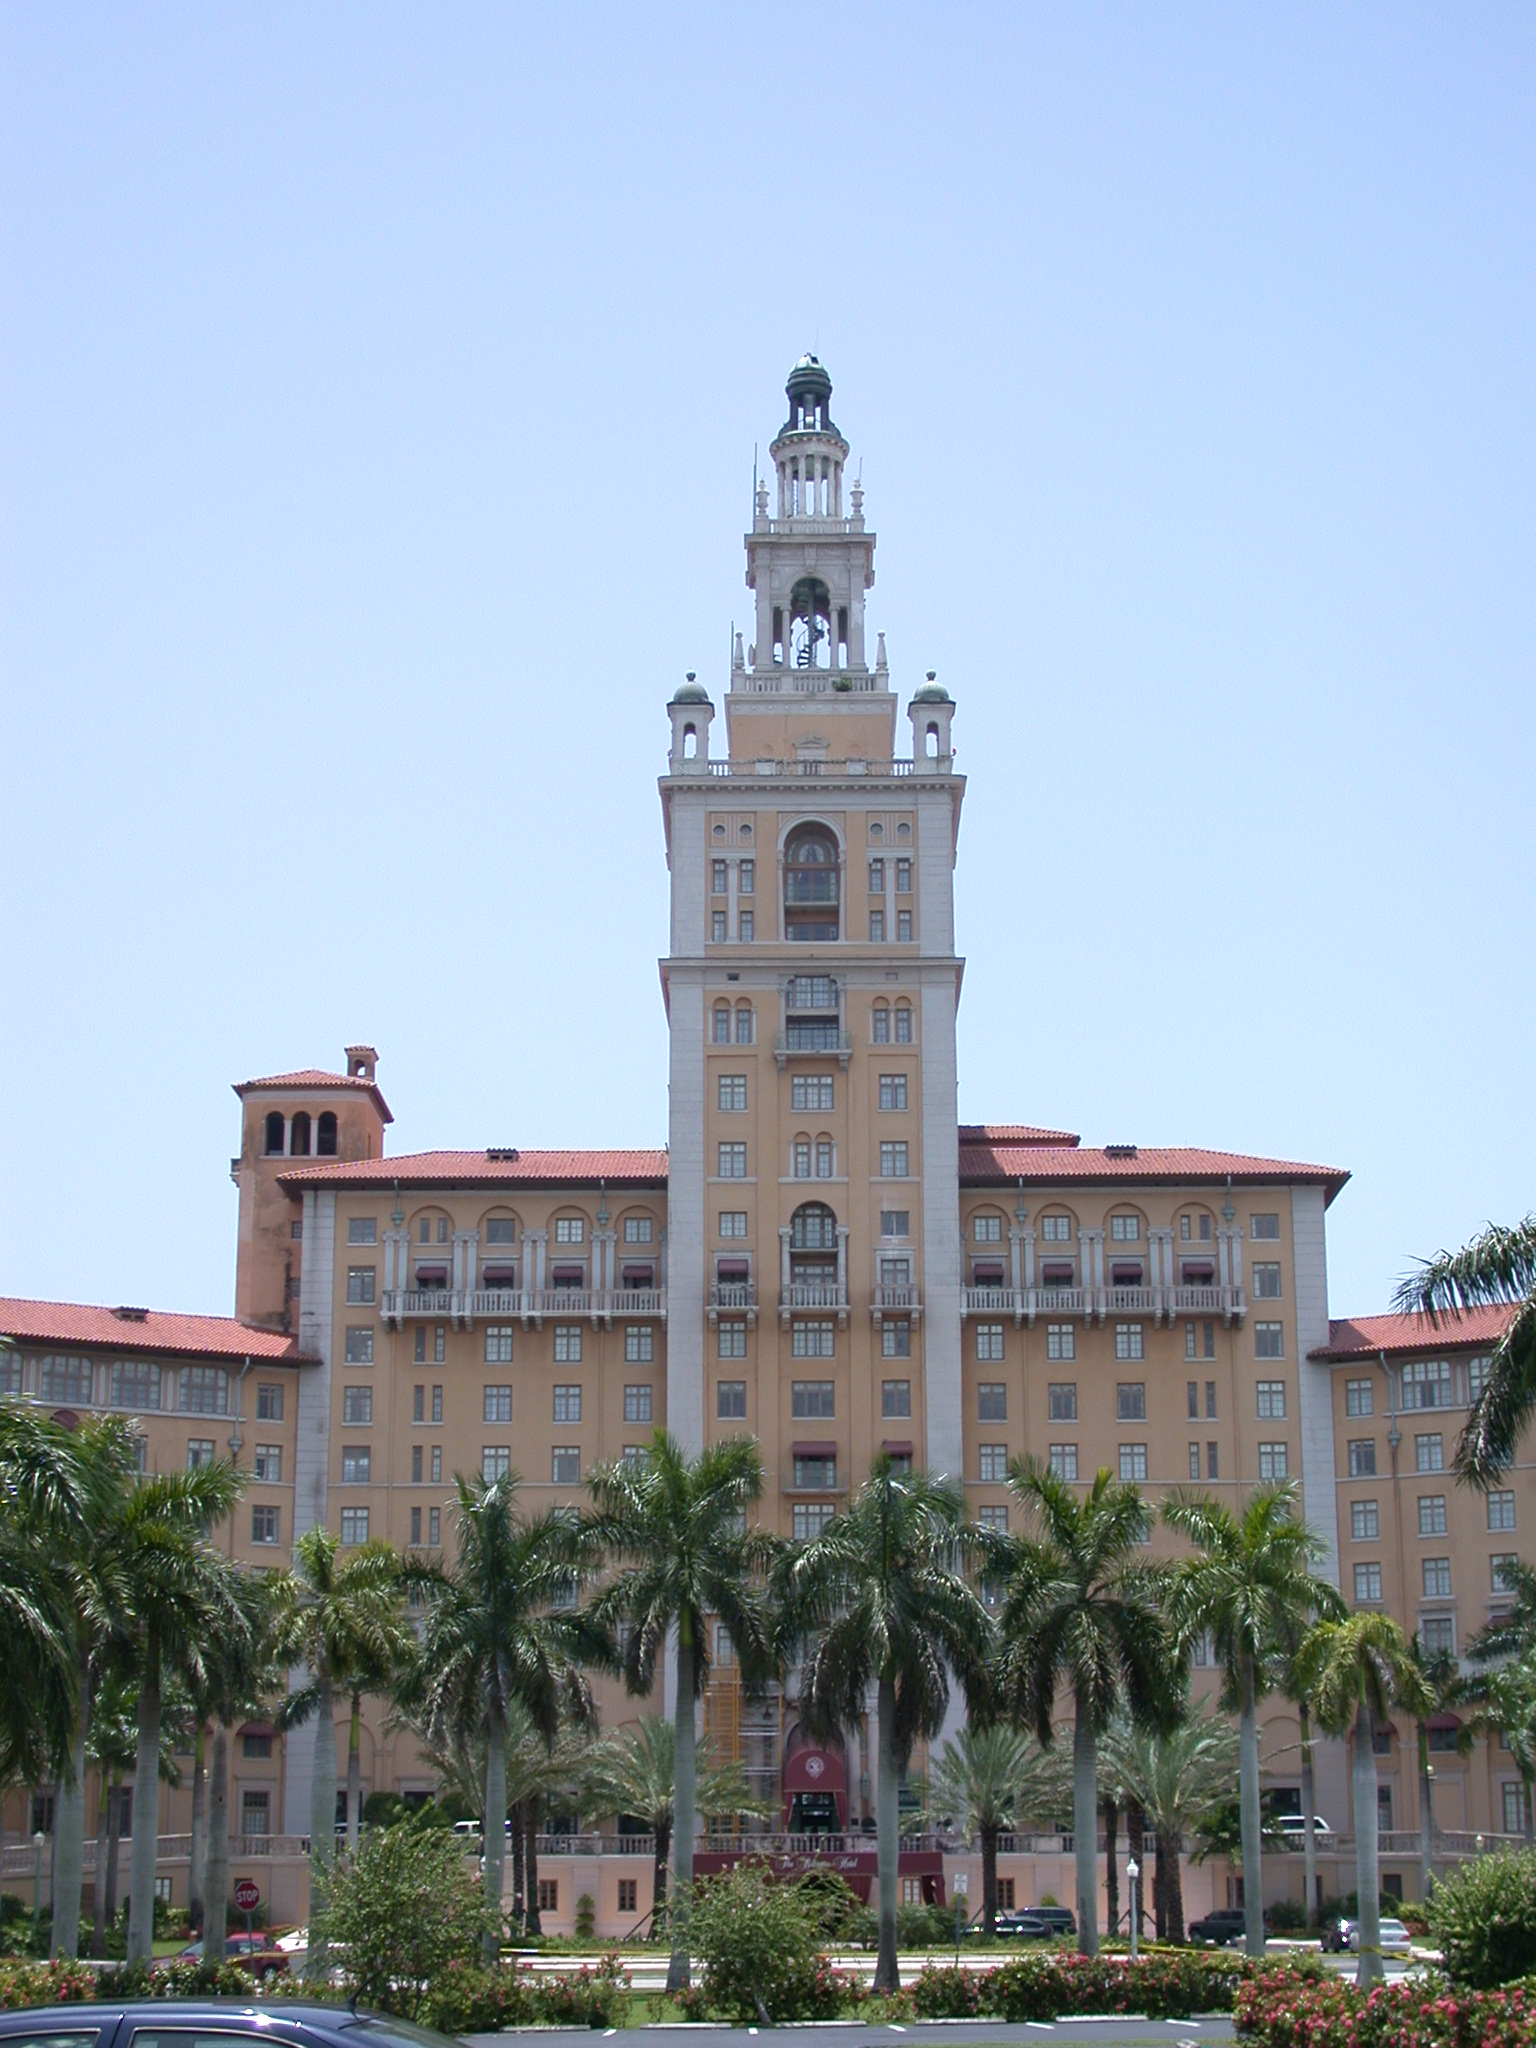 coral gables personals A free guide to coral gables adult personals and finding sex partners in coral gables with articles and advice about using online adult personals.